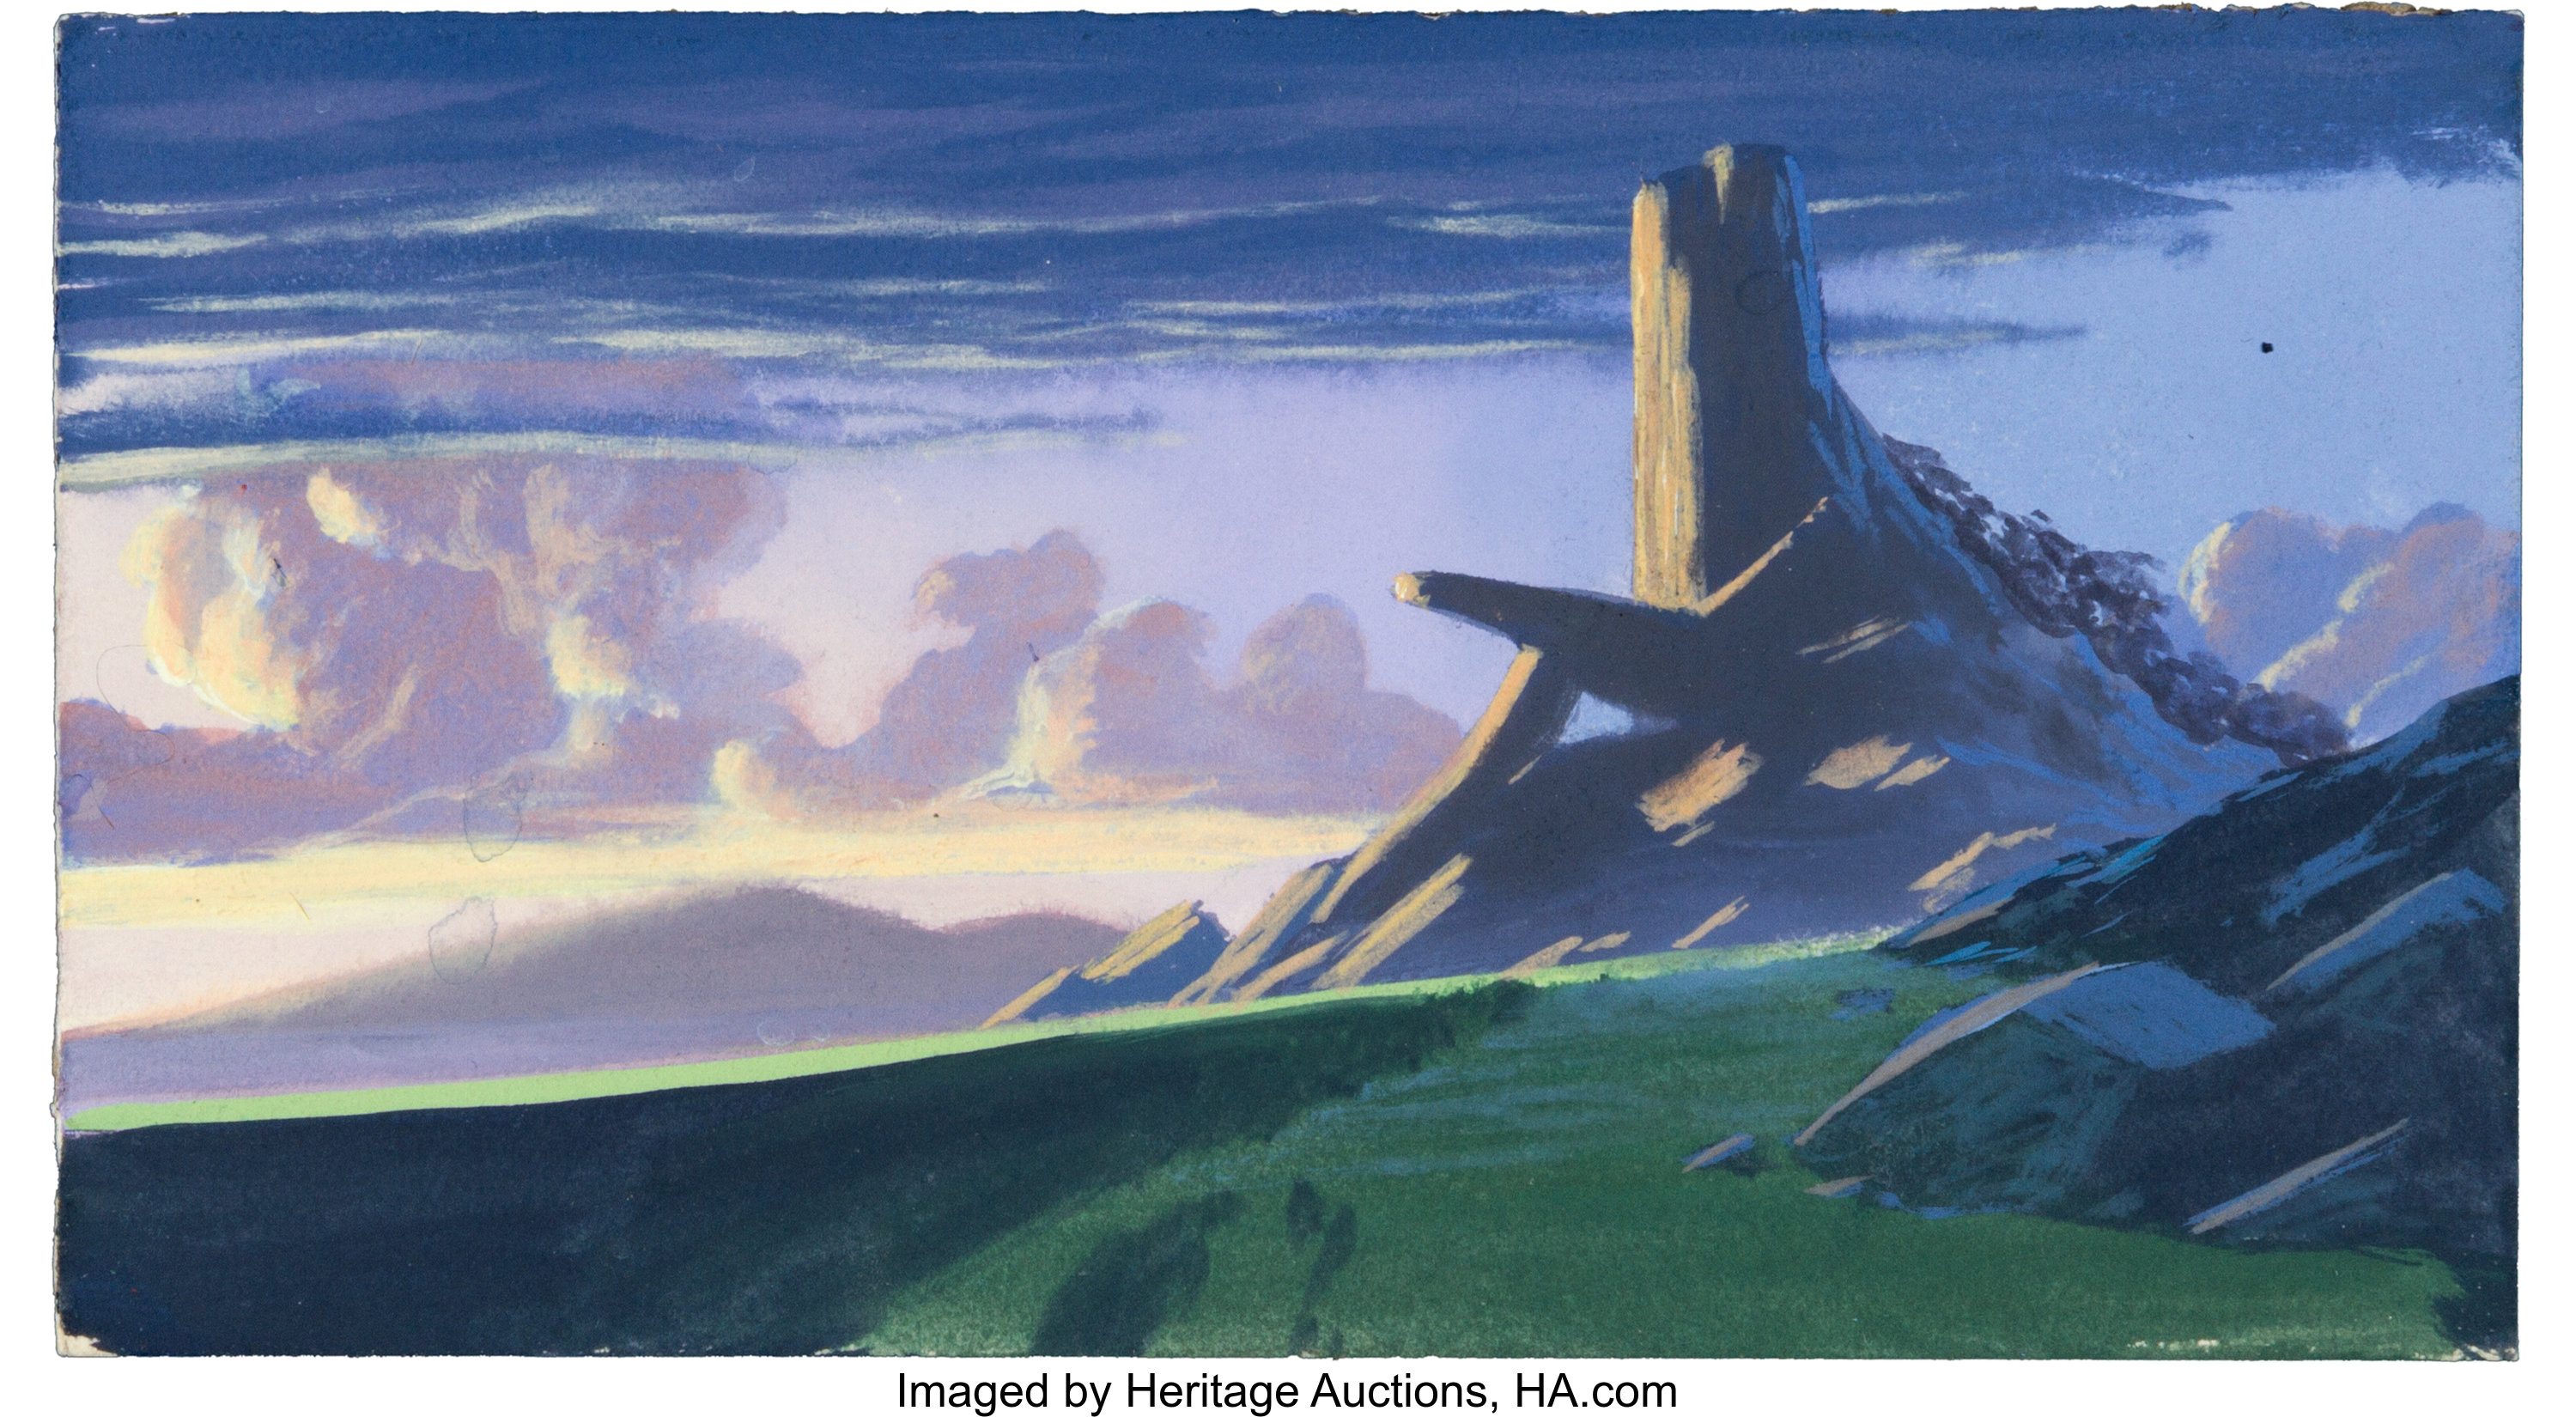 The Lion King Pride Rock Color Key Background By Greg Drolette Lot 95184 Heritage Auctions